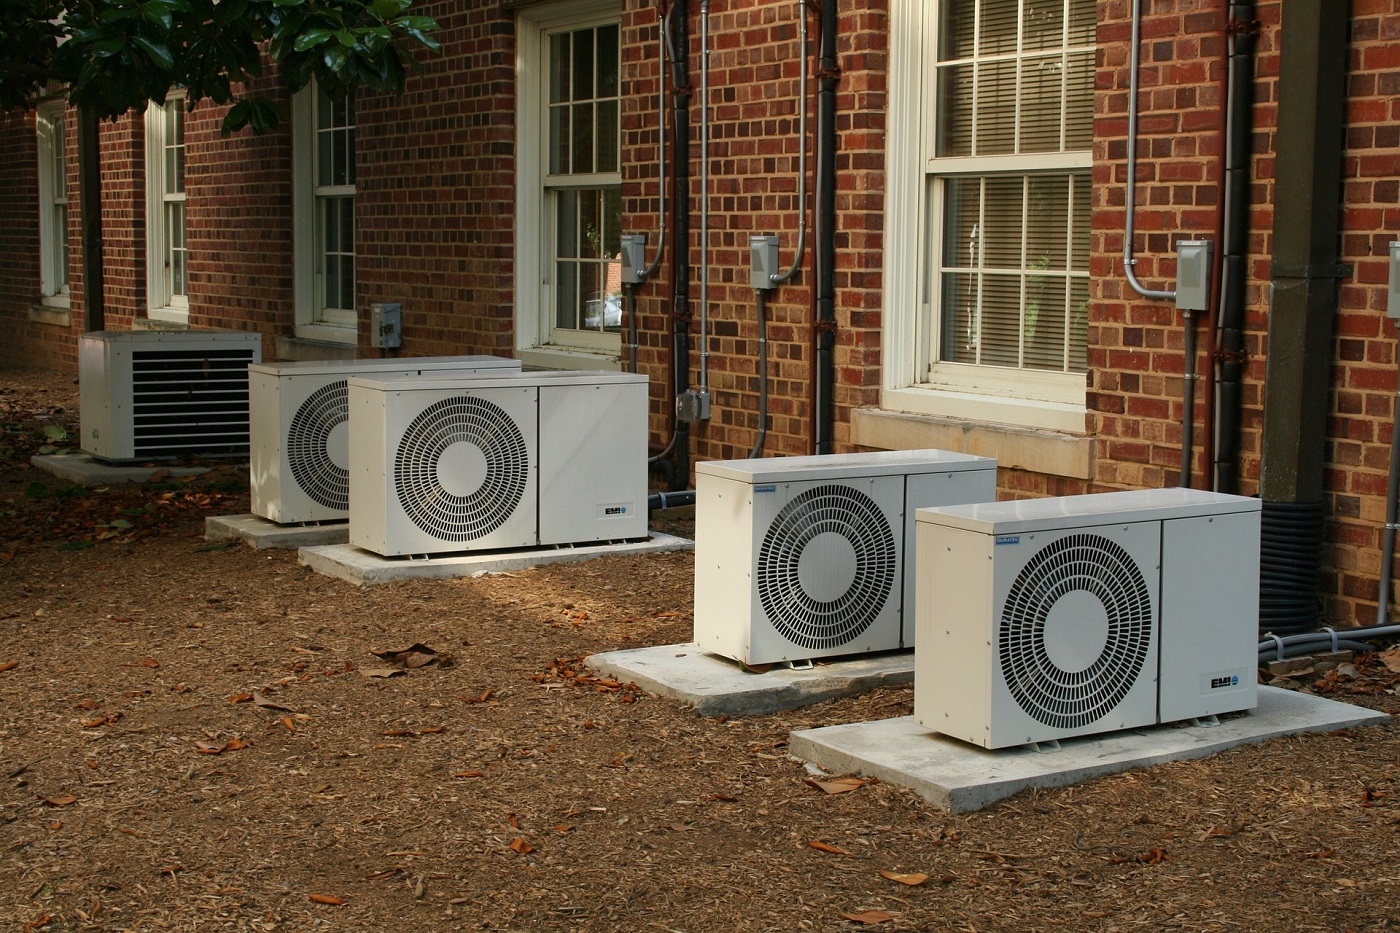 Air conditioning units outside row of homes. Photo from Pixabay.